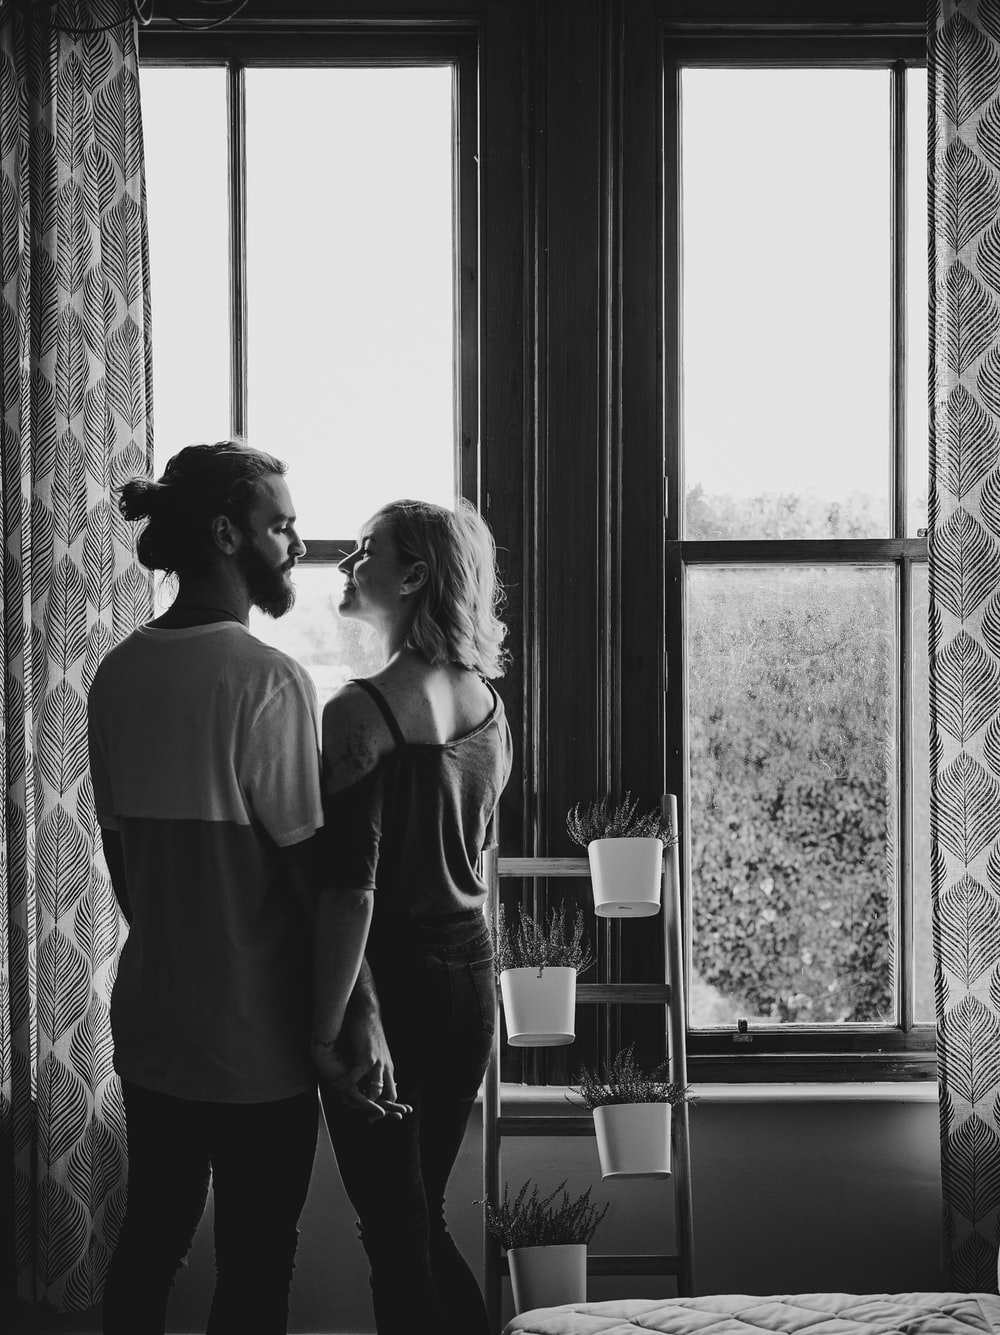 man and woman facing each other near window